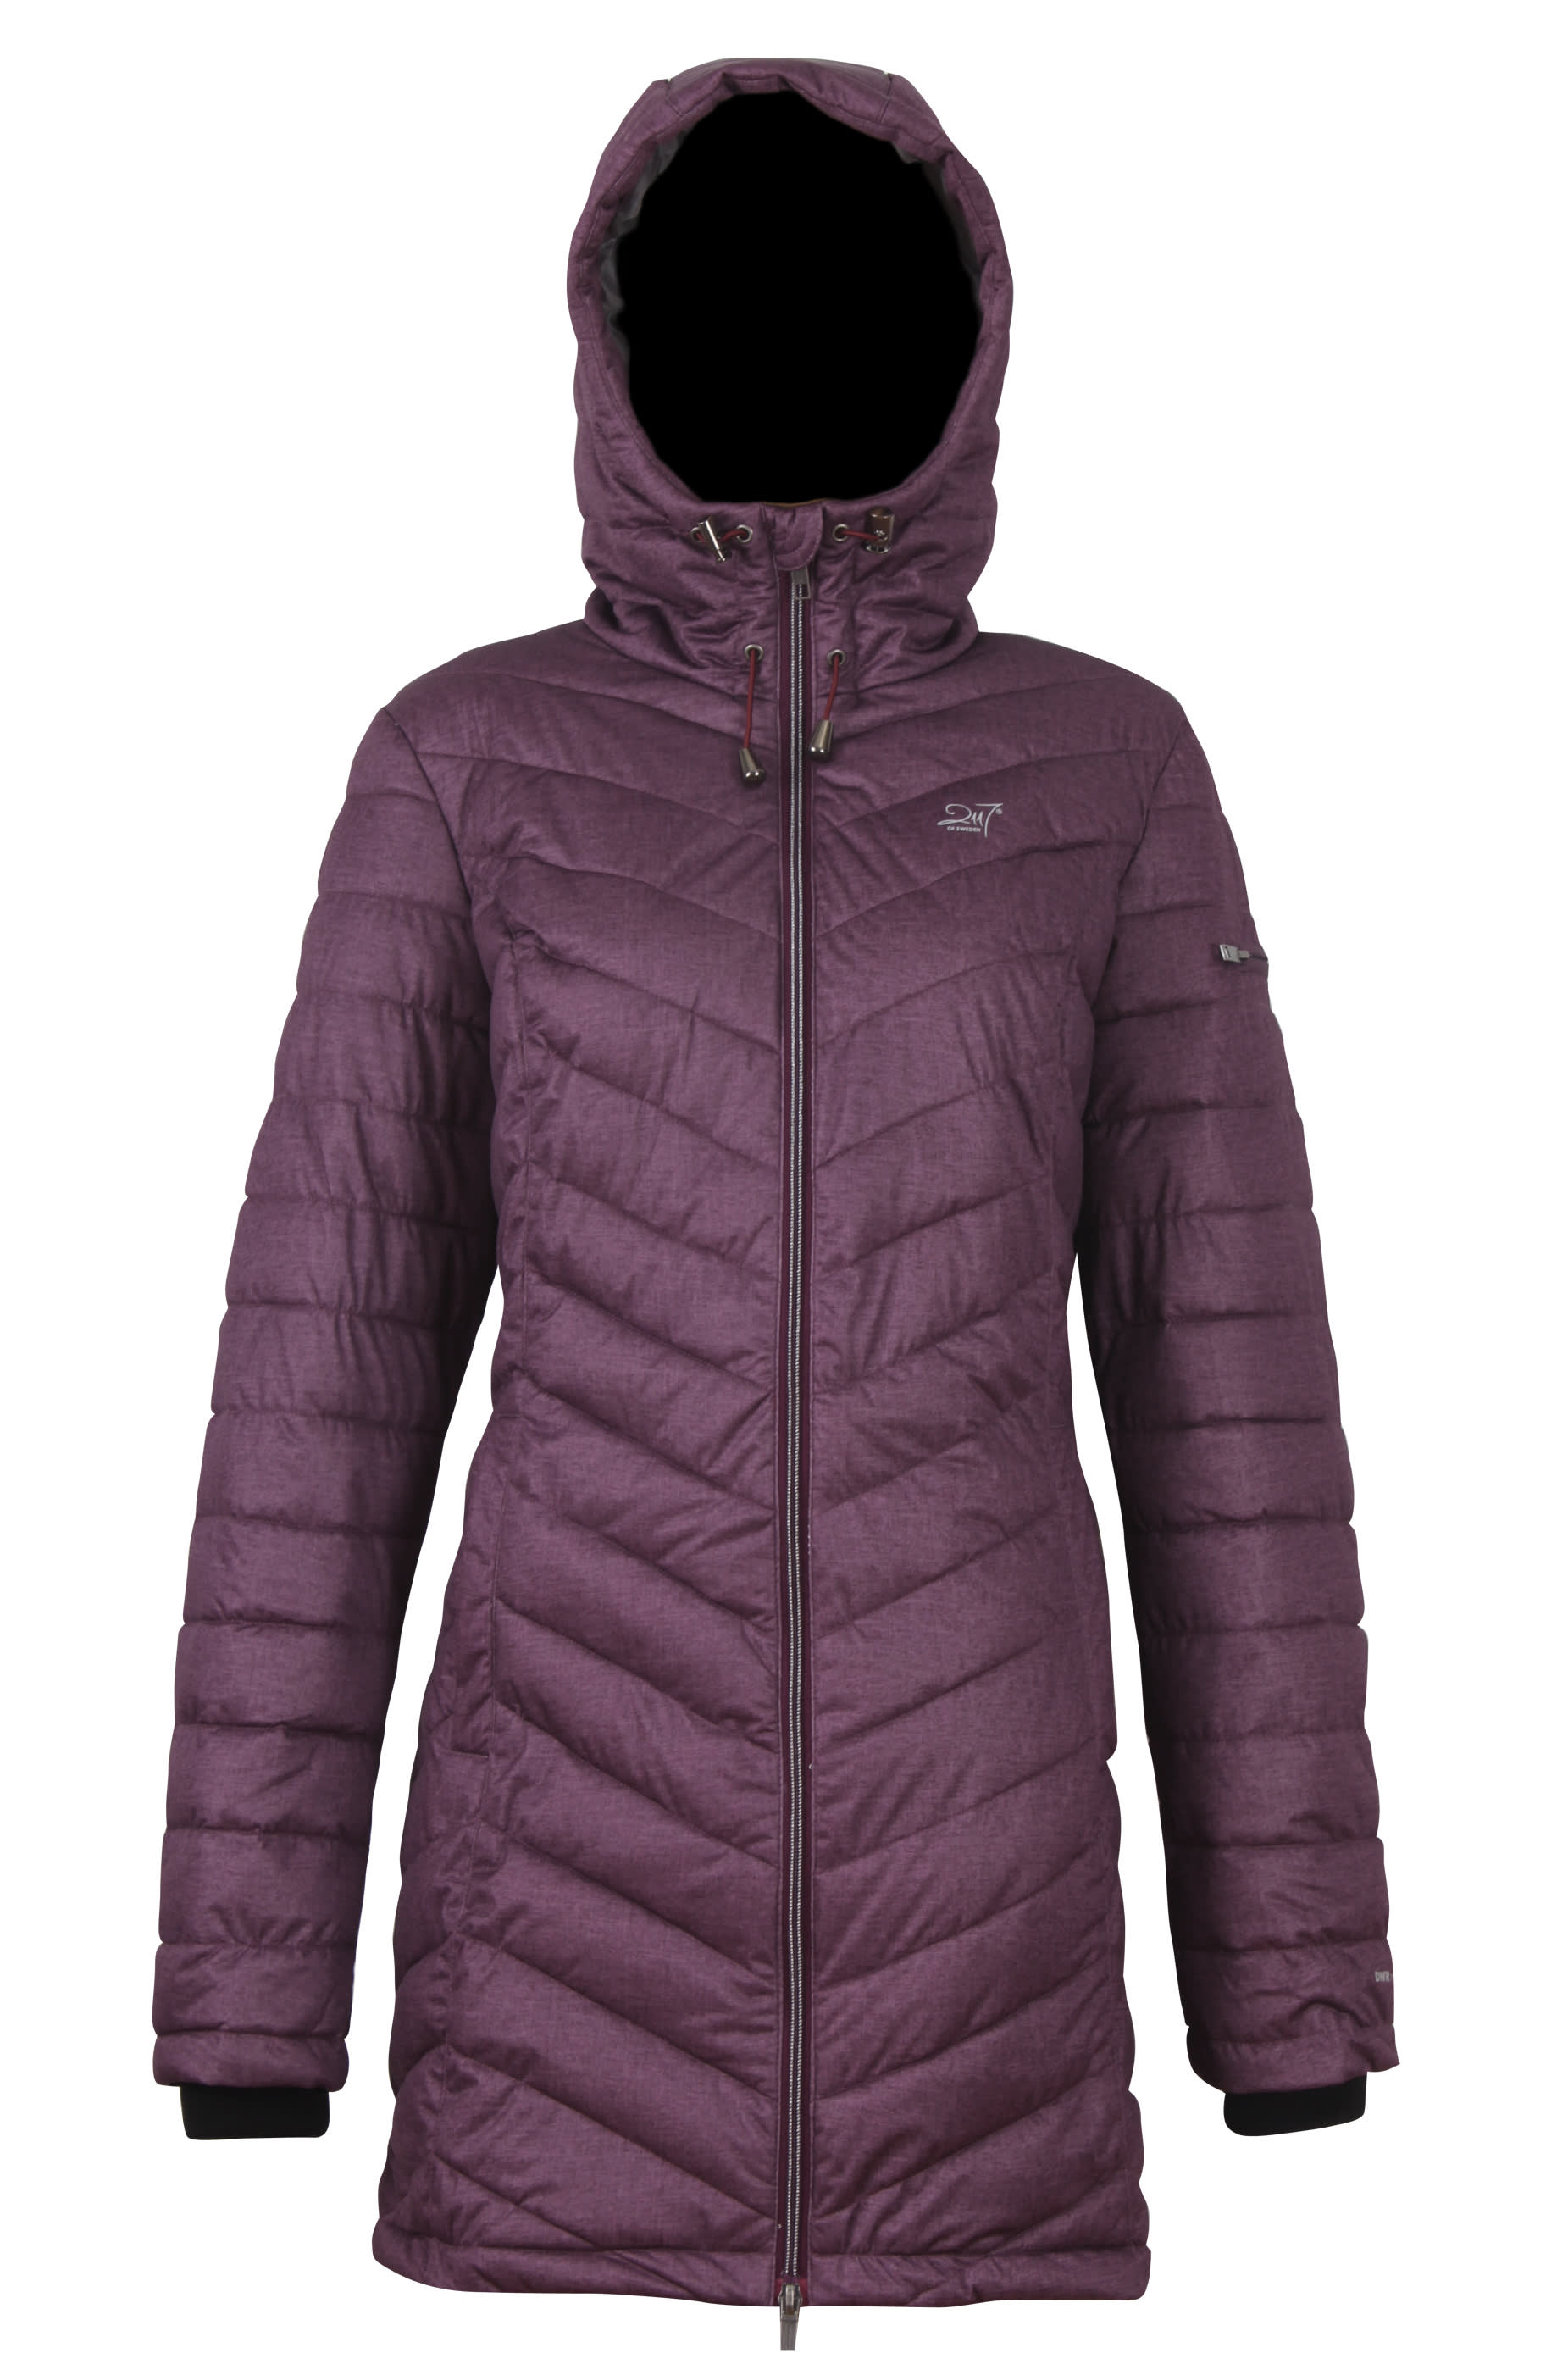 On Sale 2117 Of Sweden Istrum Jacket - Womens Up To 45% Off